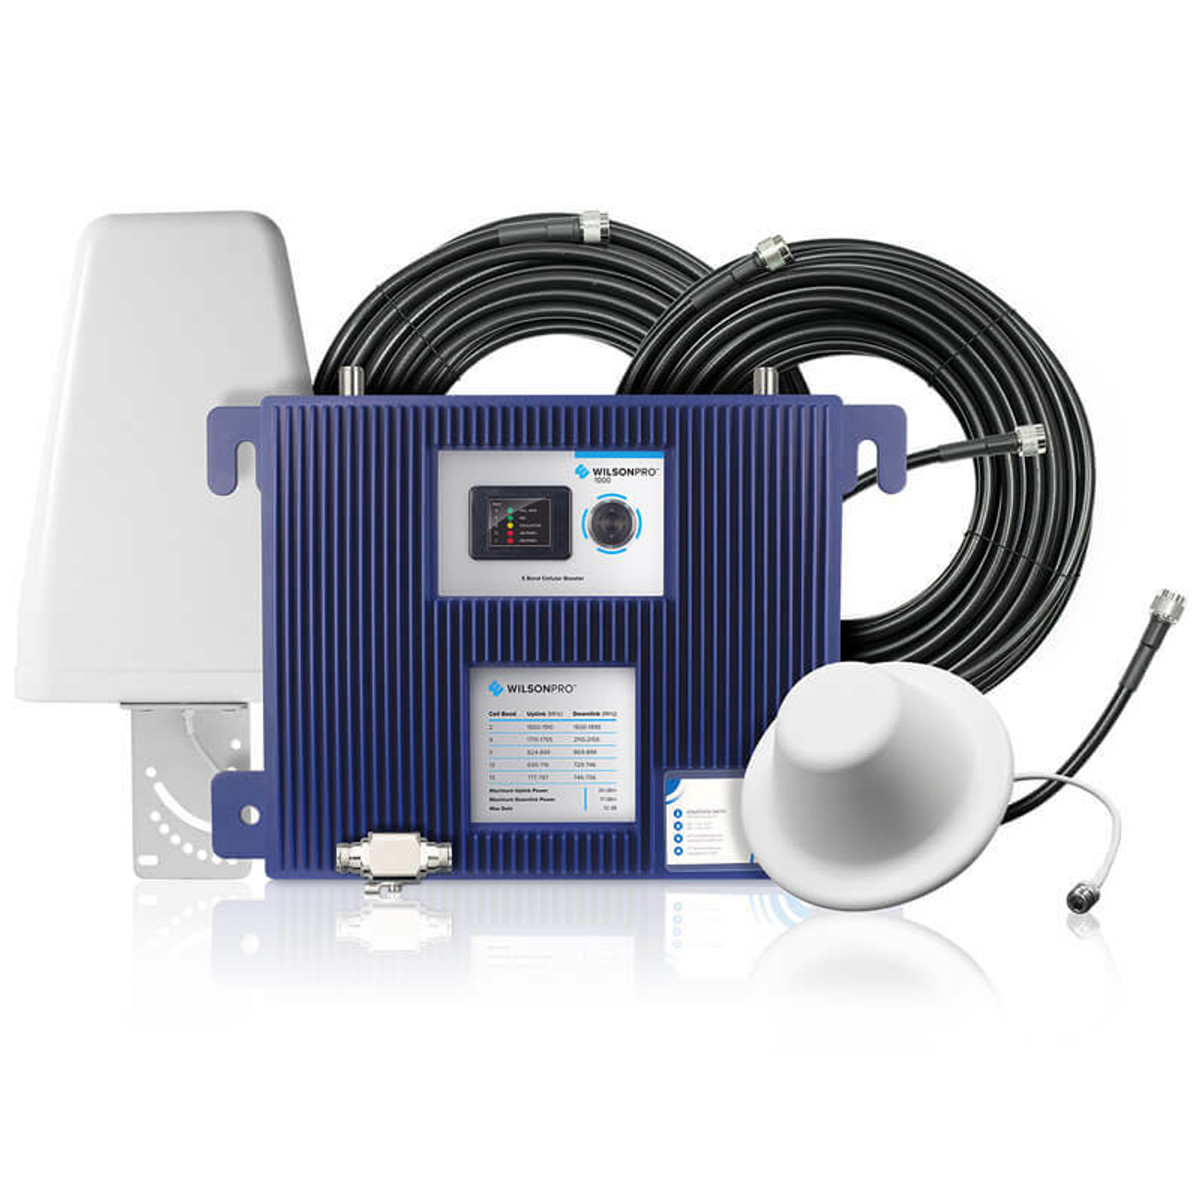 Wilson Pro Wilson Pro 1000 Commercial Signal Booster Kit or 460236